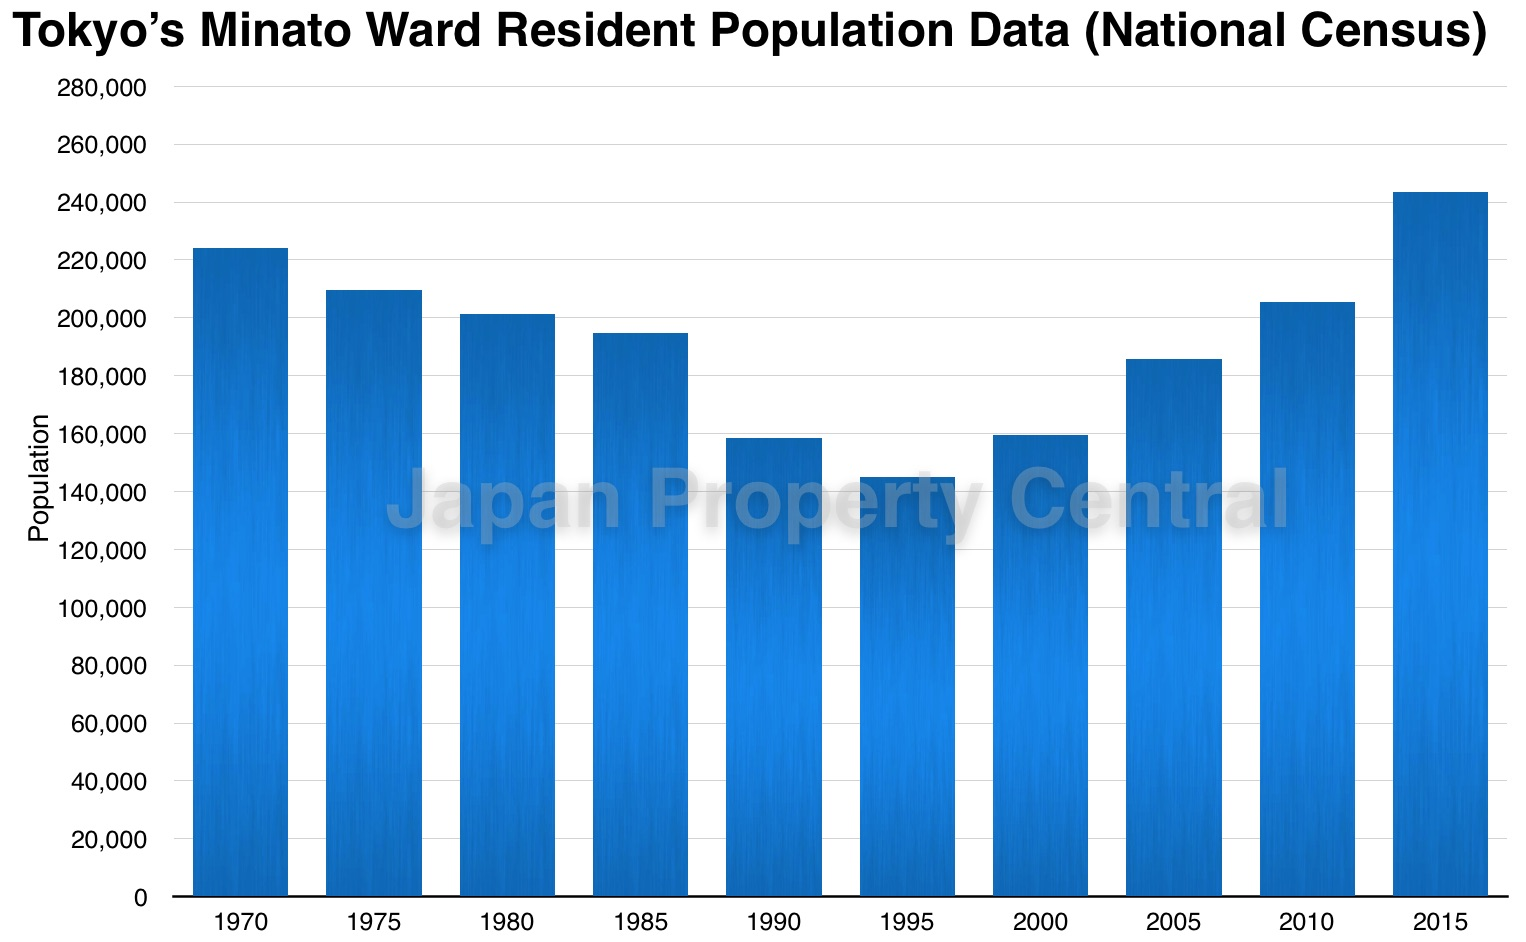 Minato ward's population exceeds 250,000 for first time in 54 years